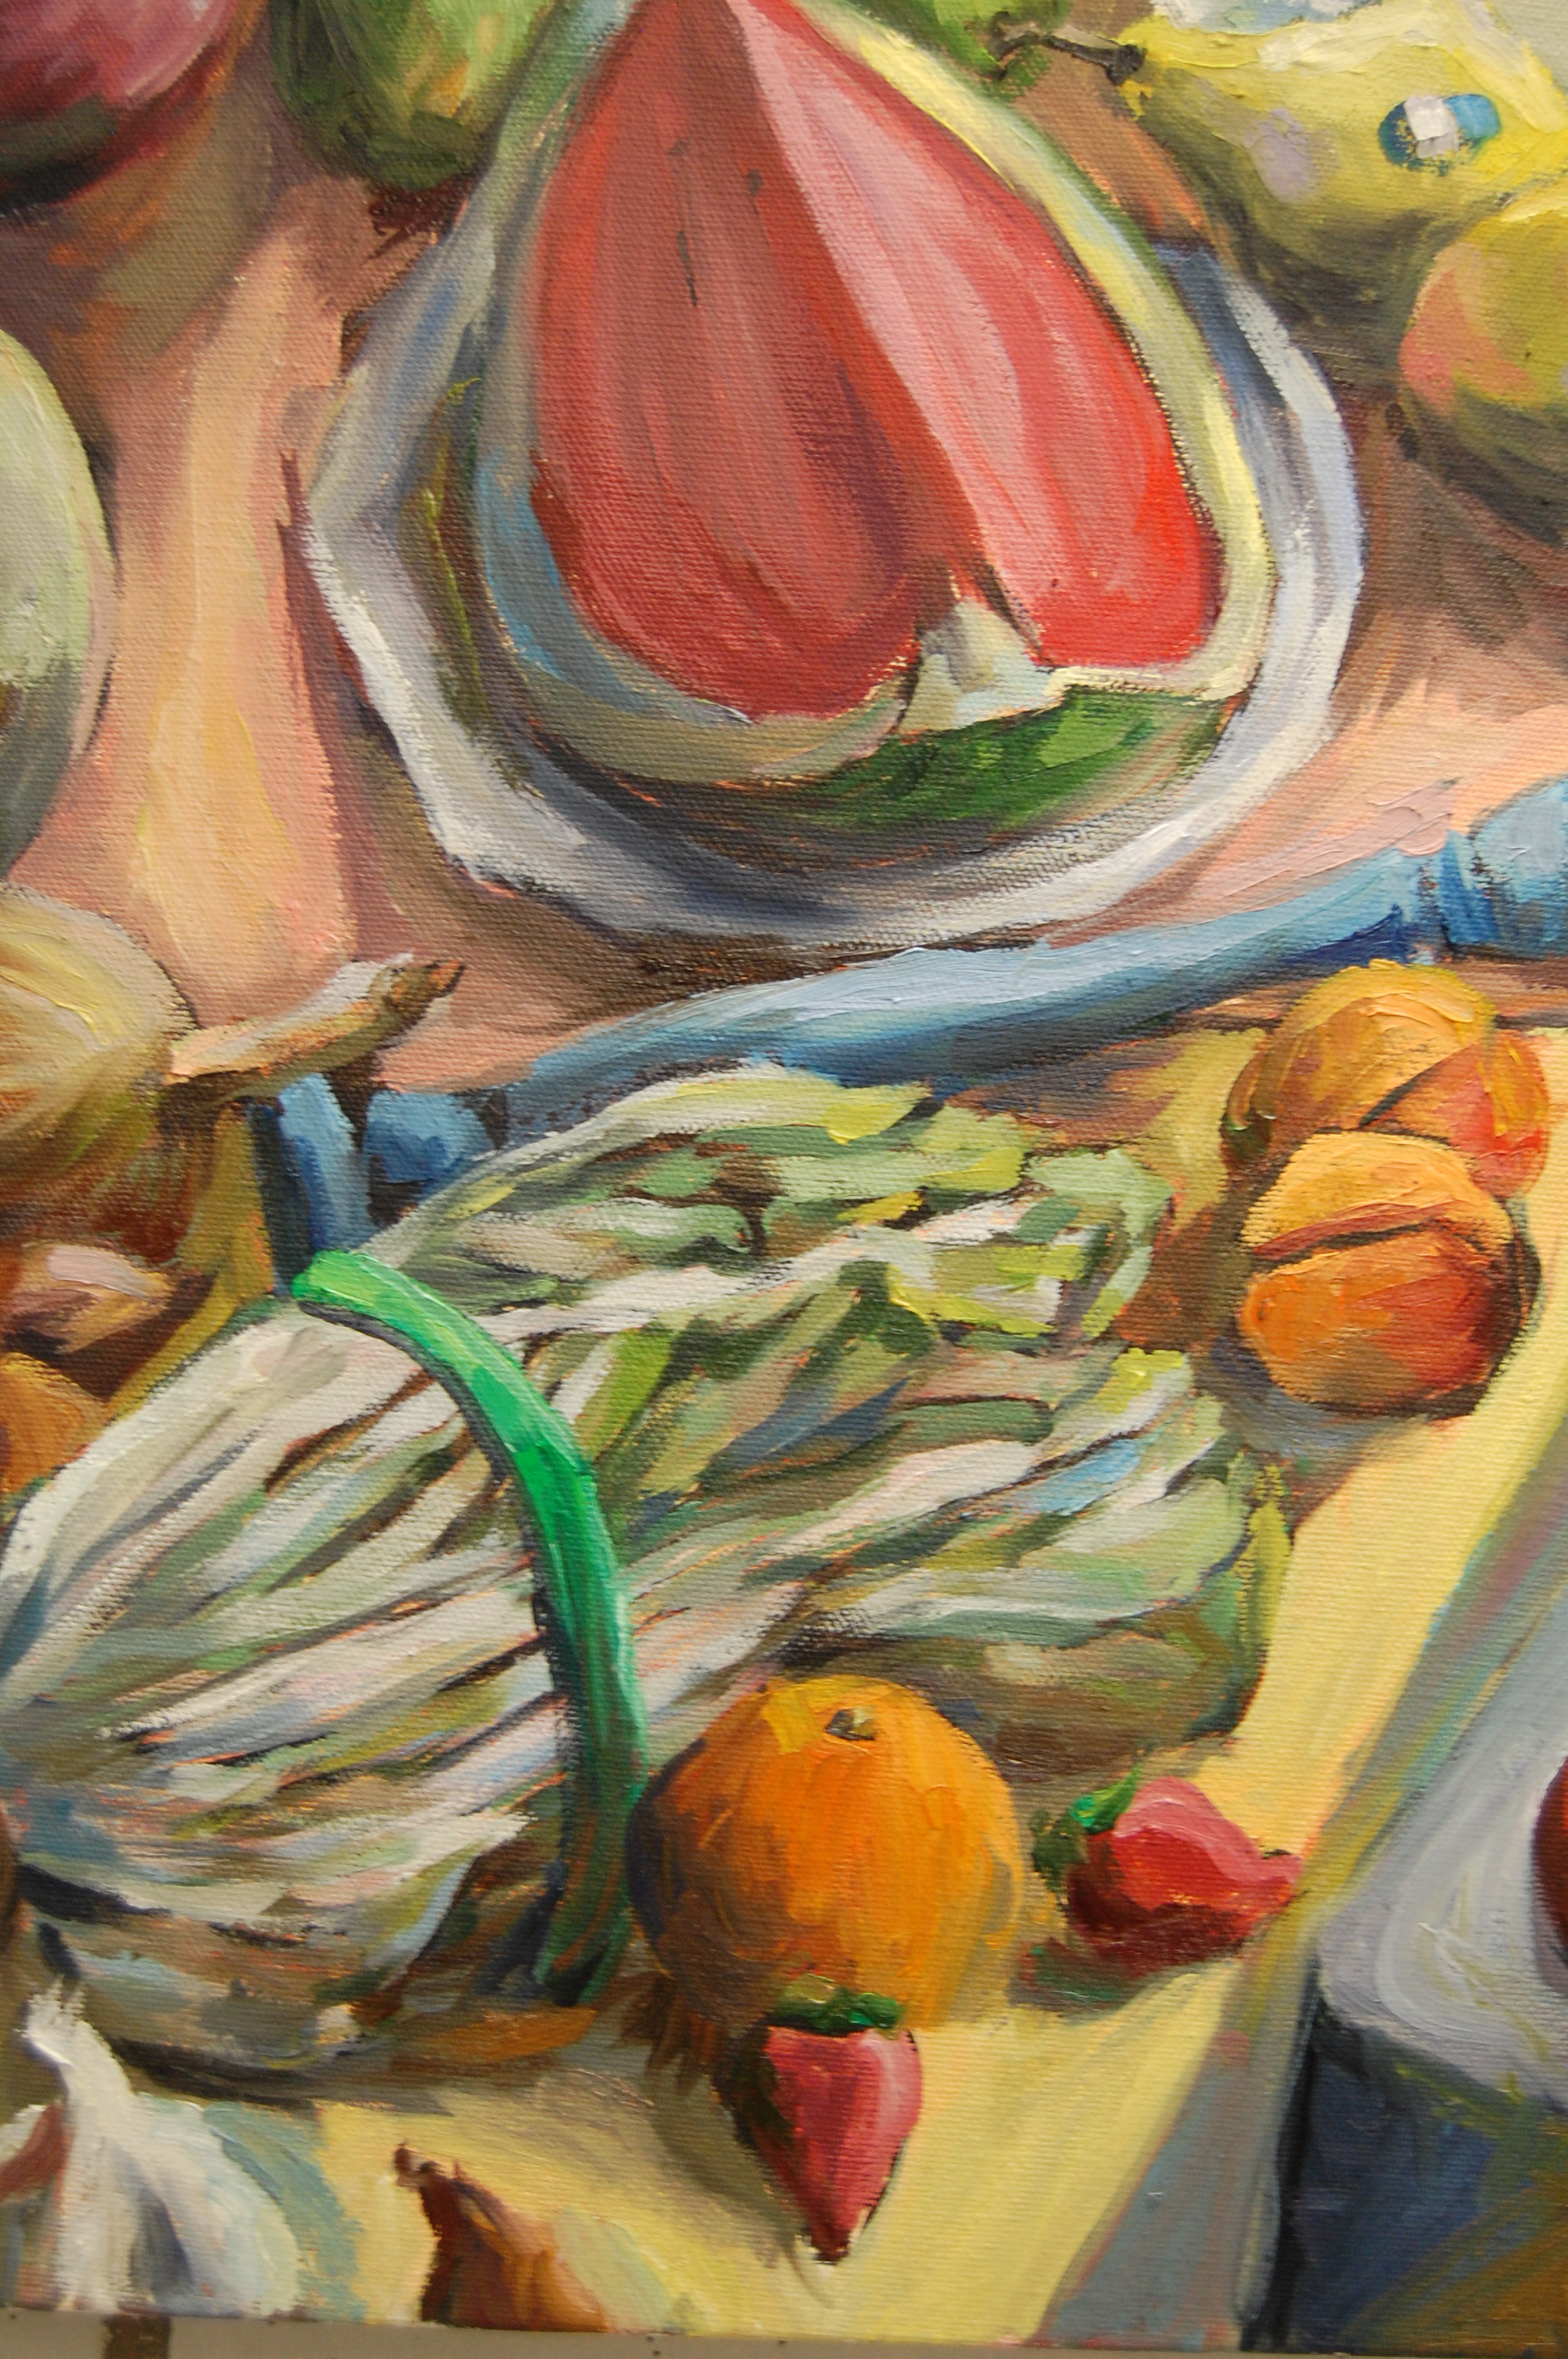 Still Life with Watermelon, Oil on canvas, 2011